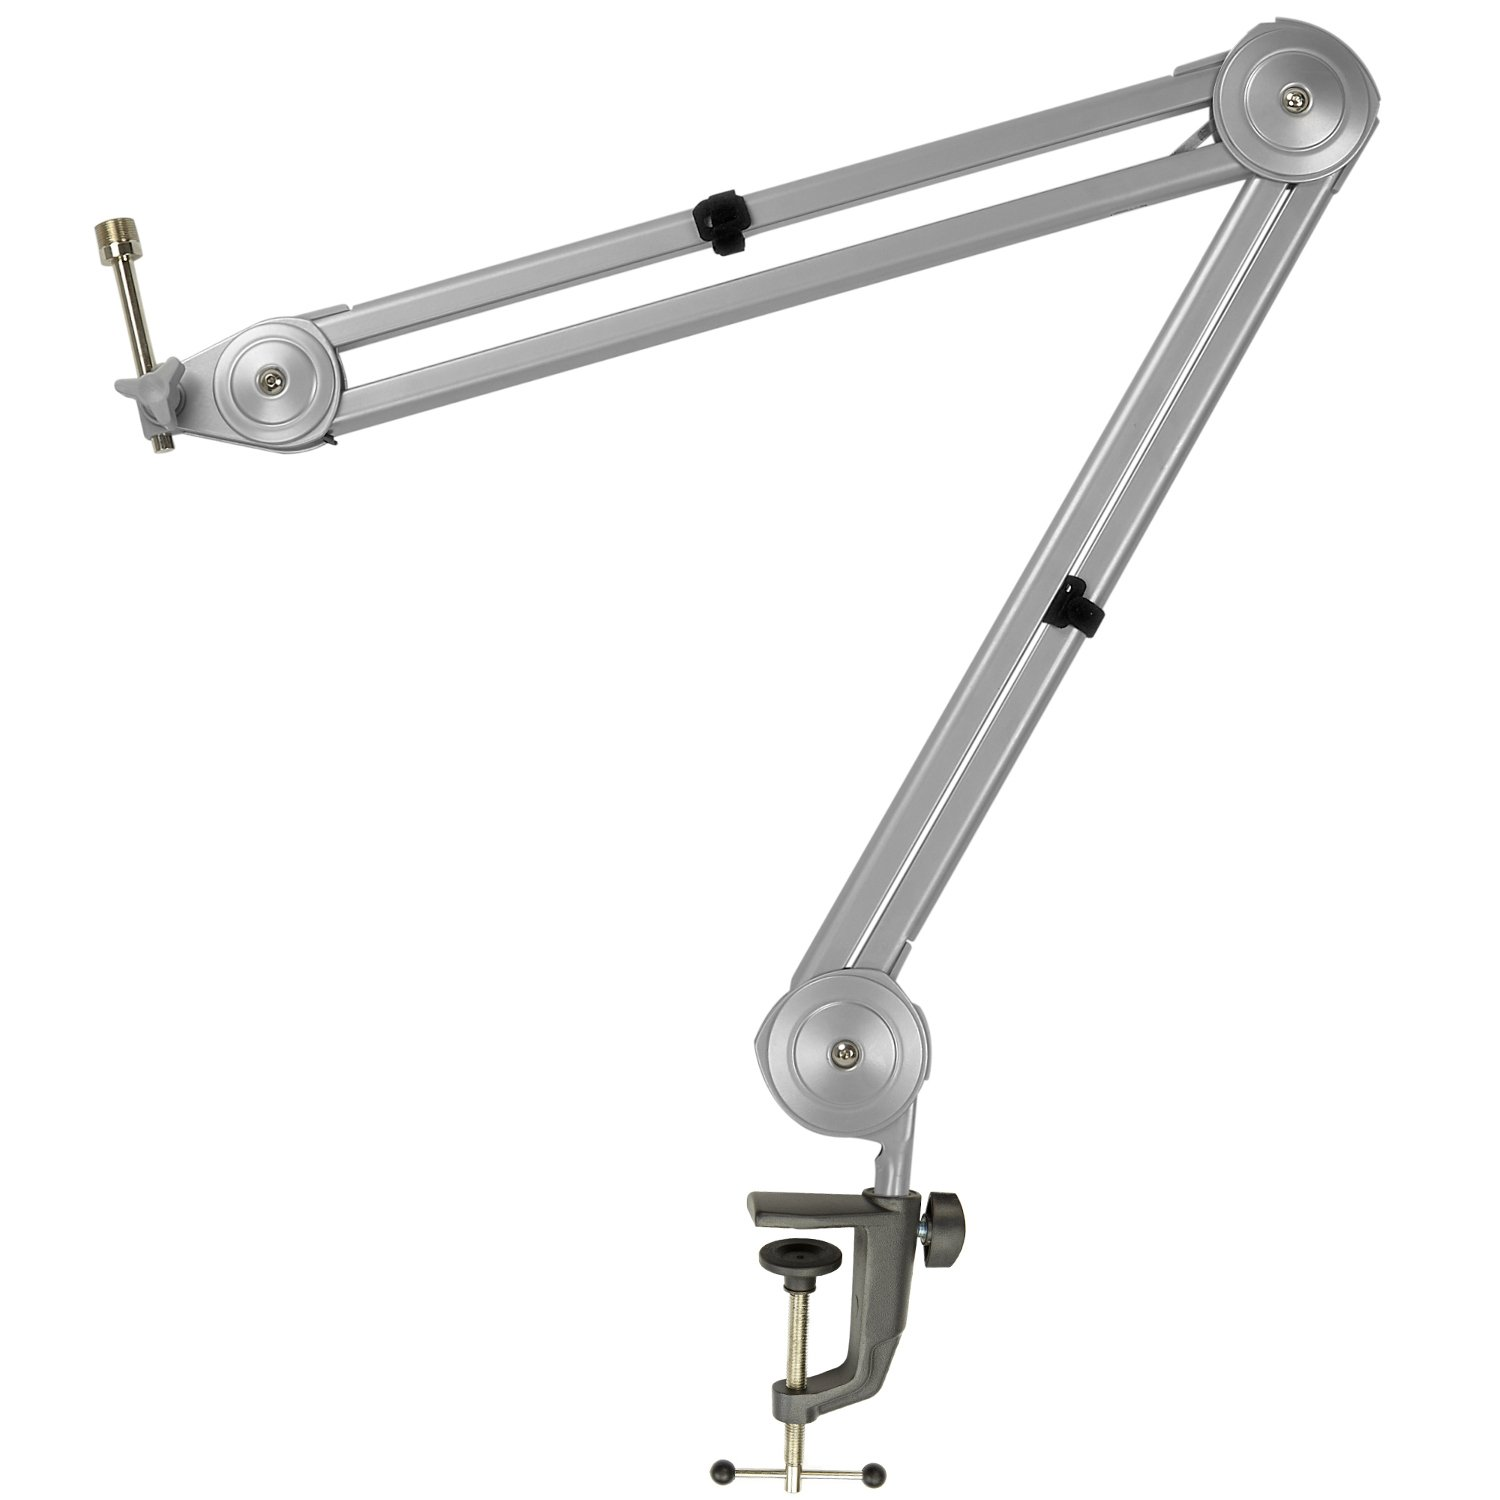 Knox Boom Microphone Stand Adjustable Scissor Arm Suspension Mic Holder For Recording Table Mount Durable Steel